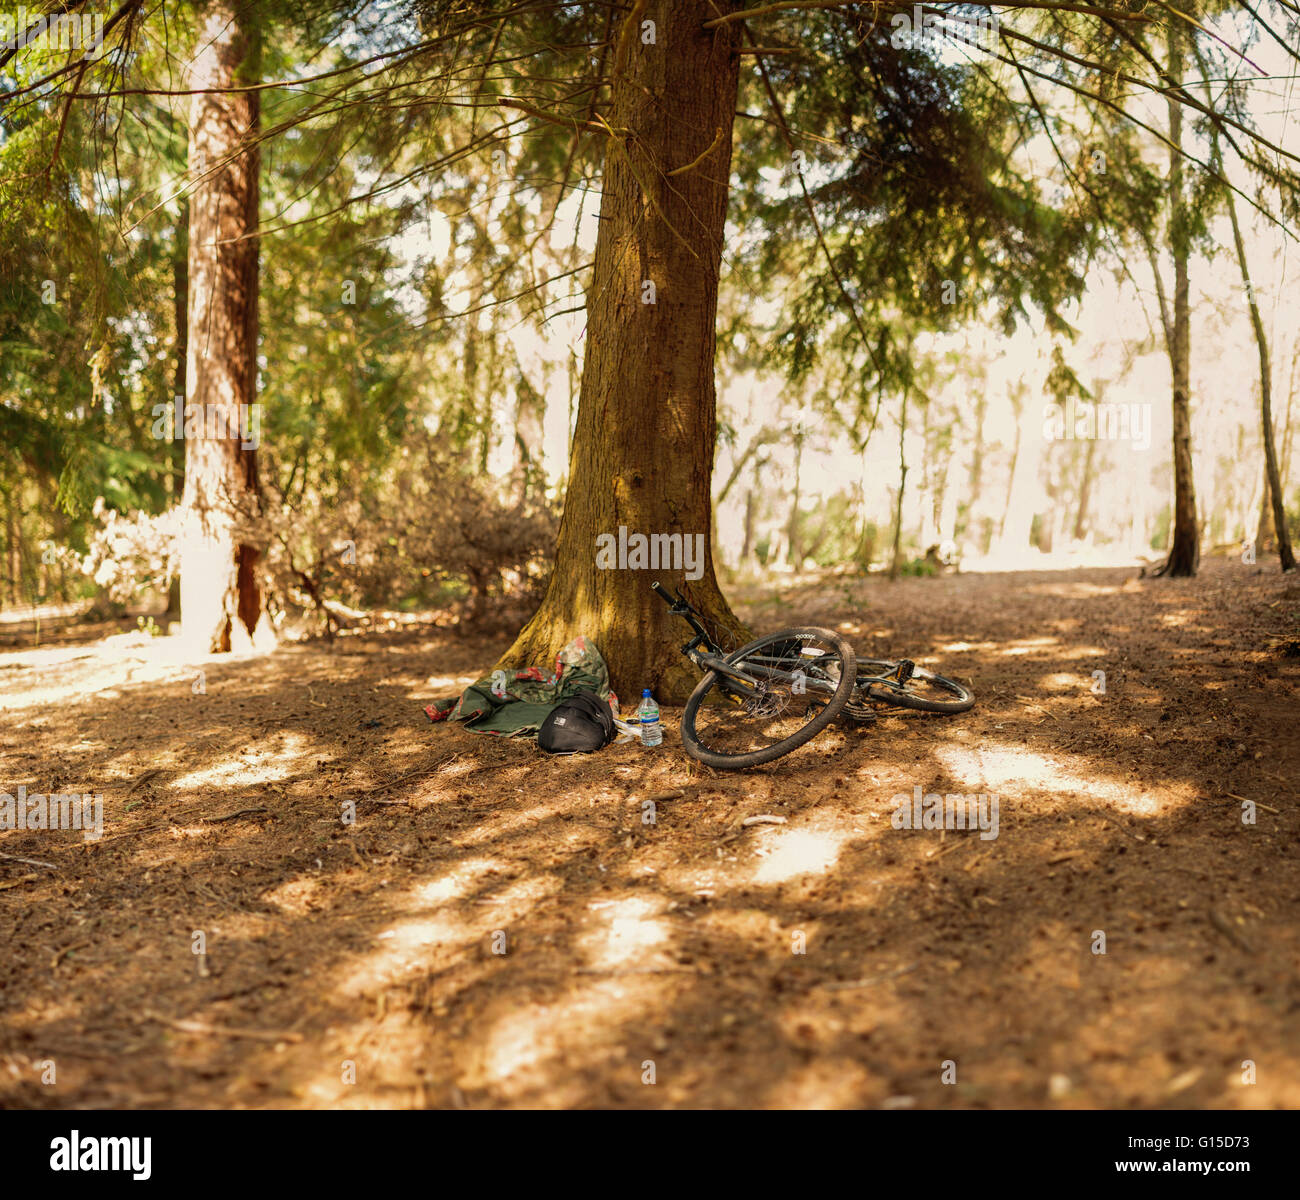 abandoned bicycle in the forest - Stock Image